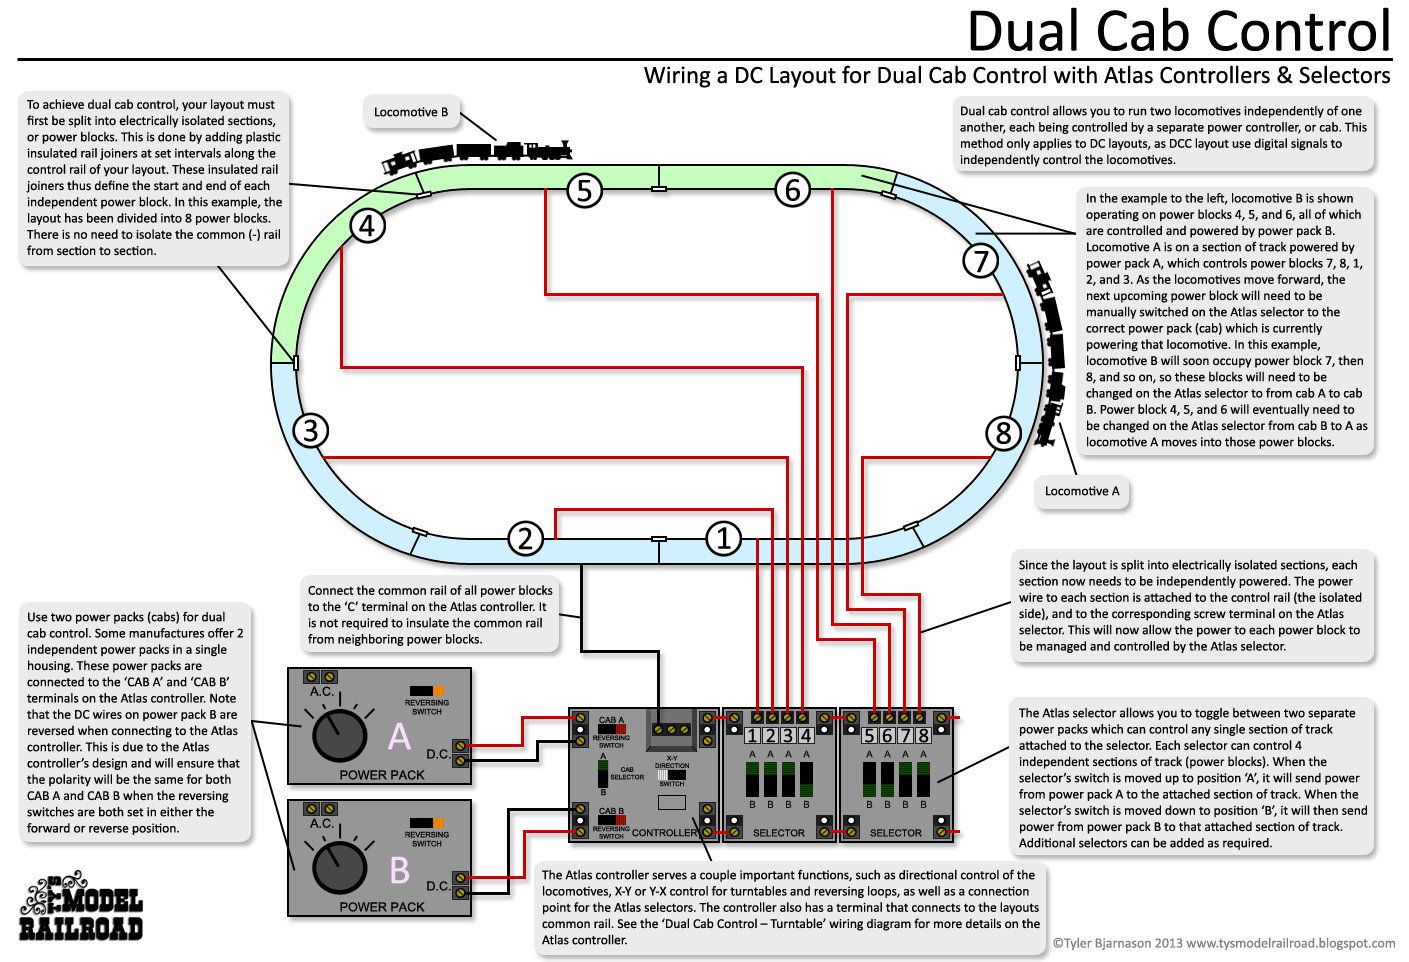 ty s model railroad wiring diagrams rh tysmodelrailroad blogspot com RCA Connector Wiring atlas connector wiring diagram